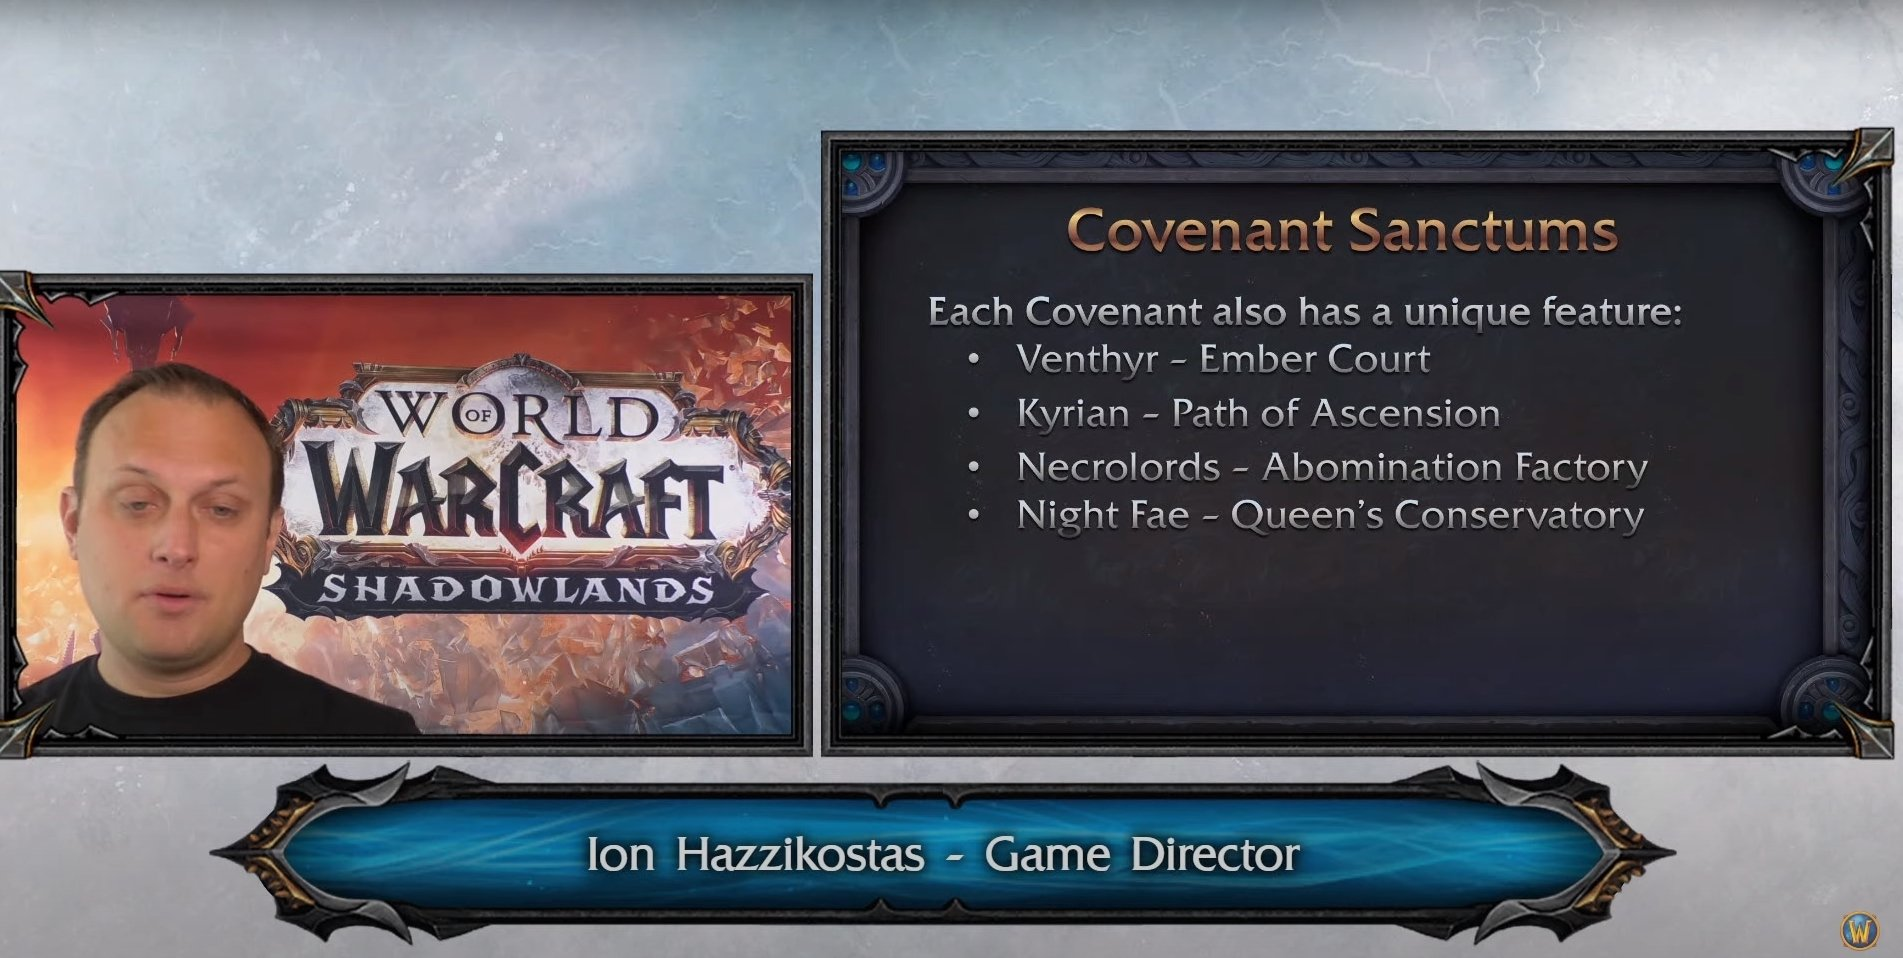 Wowhead Has Released New Datamined Conduit Item Levels For World Of Warcraft: Shadowlands